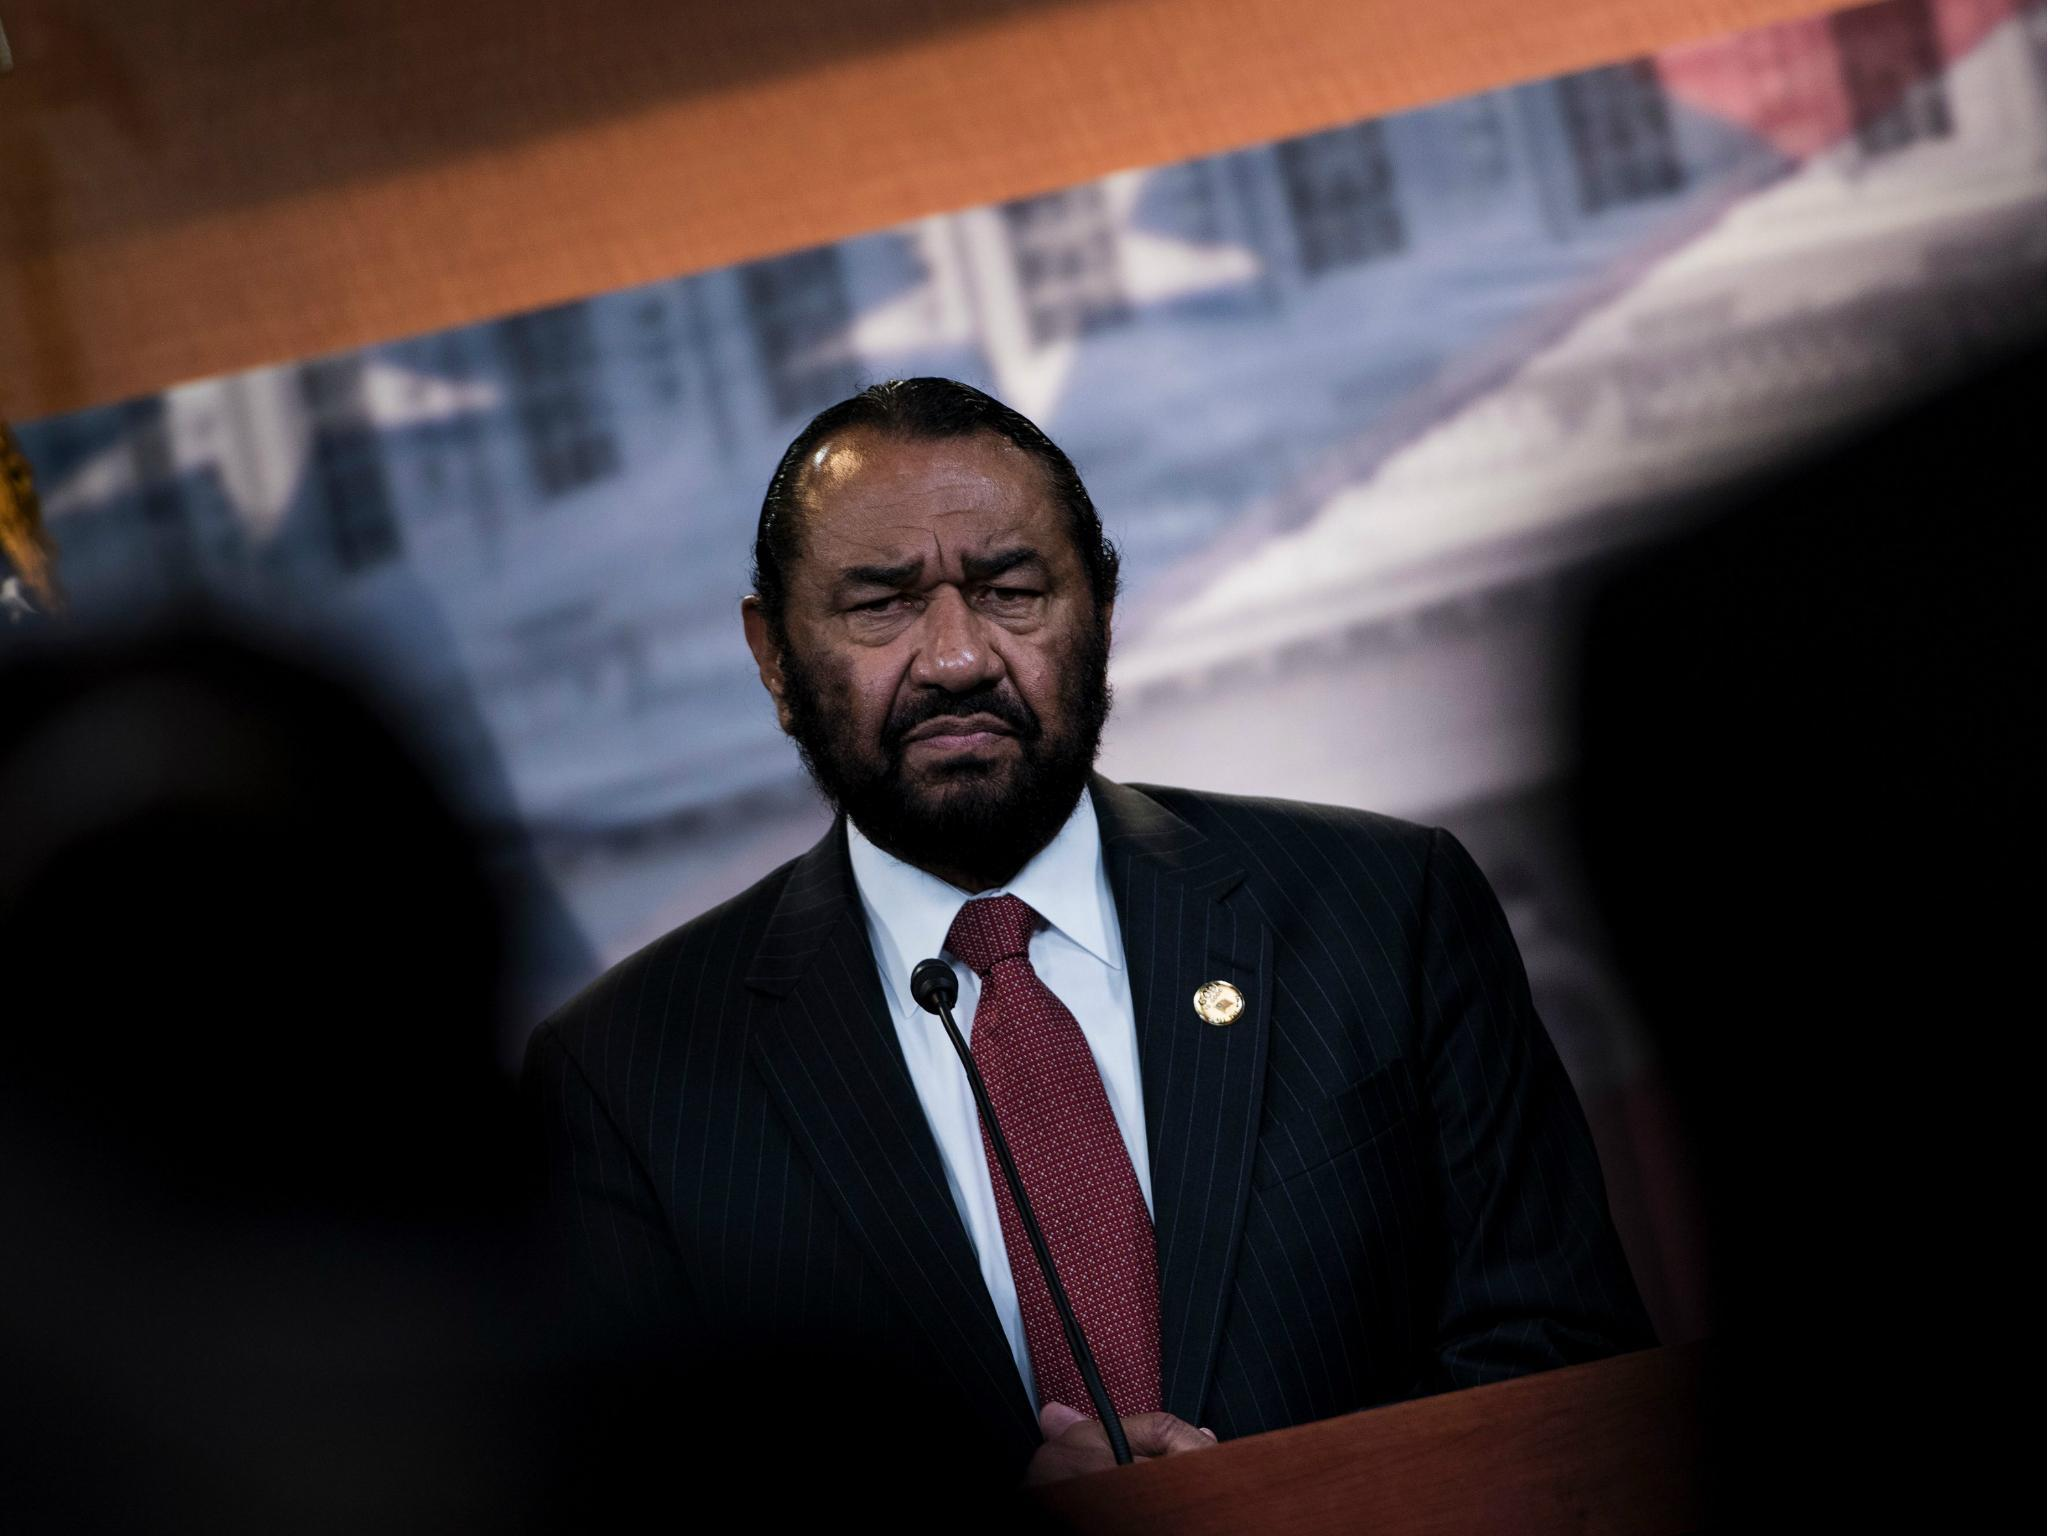 Al Green says Trump's 'harm to society' are new grounds for impeachment